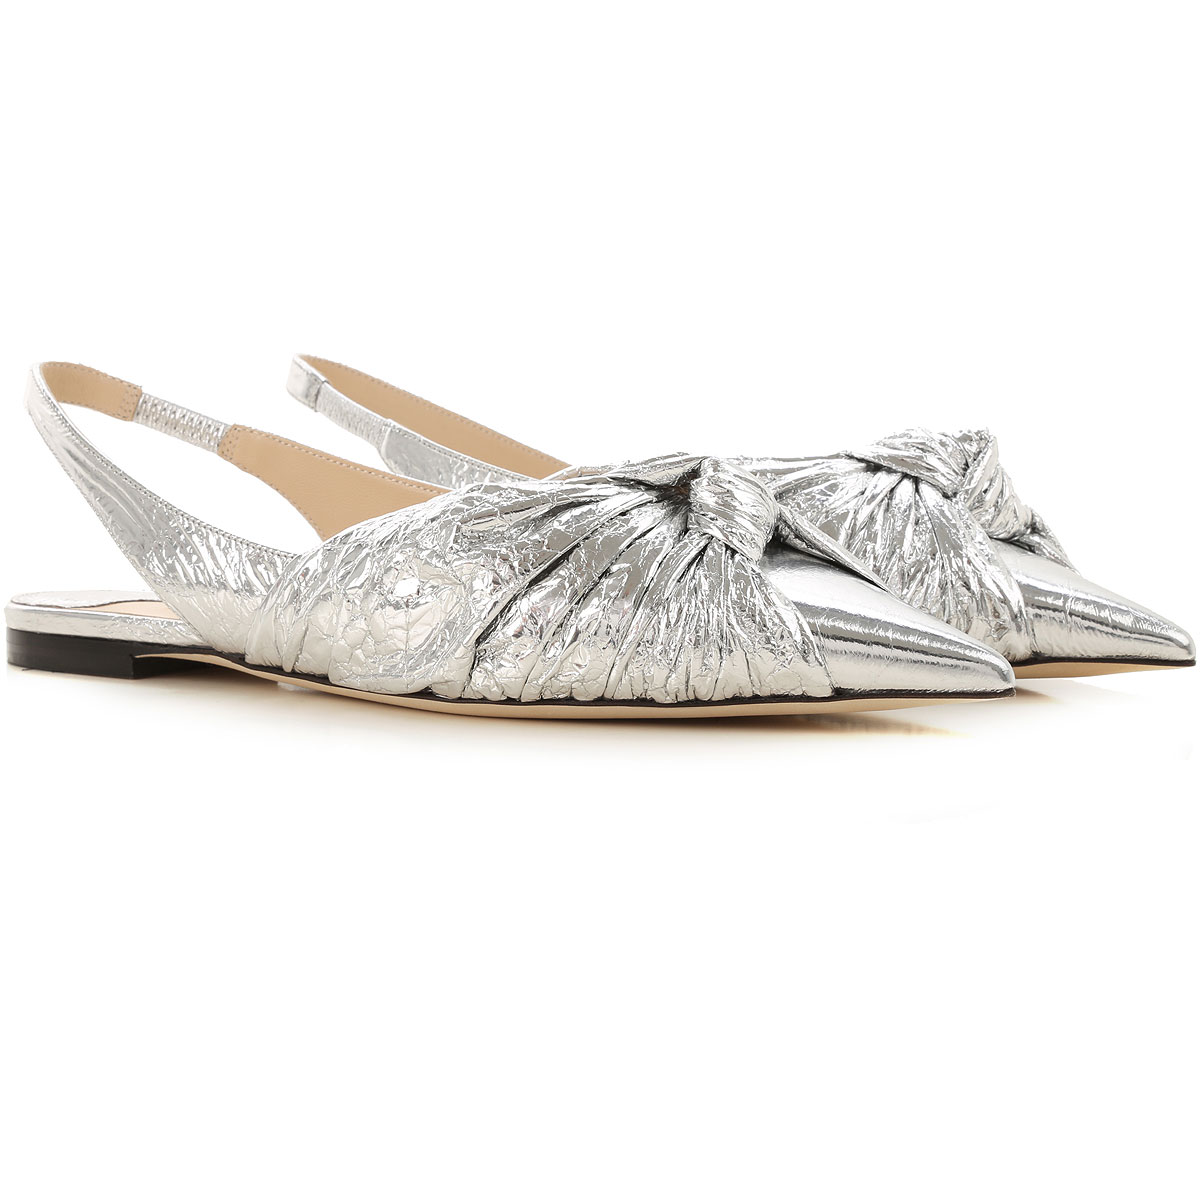 Jimmy Choo Ballet Flats Ballerina Shoes for Women On Sale in Outlet, Silver, Leather, 2019, 5 6